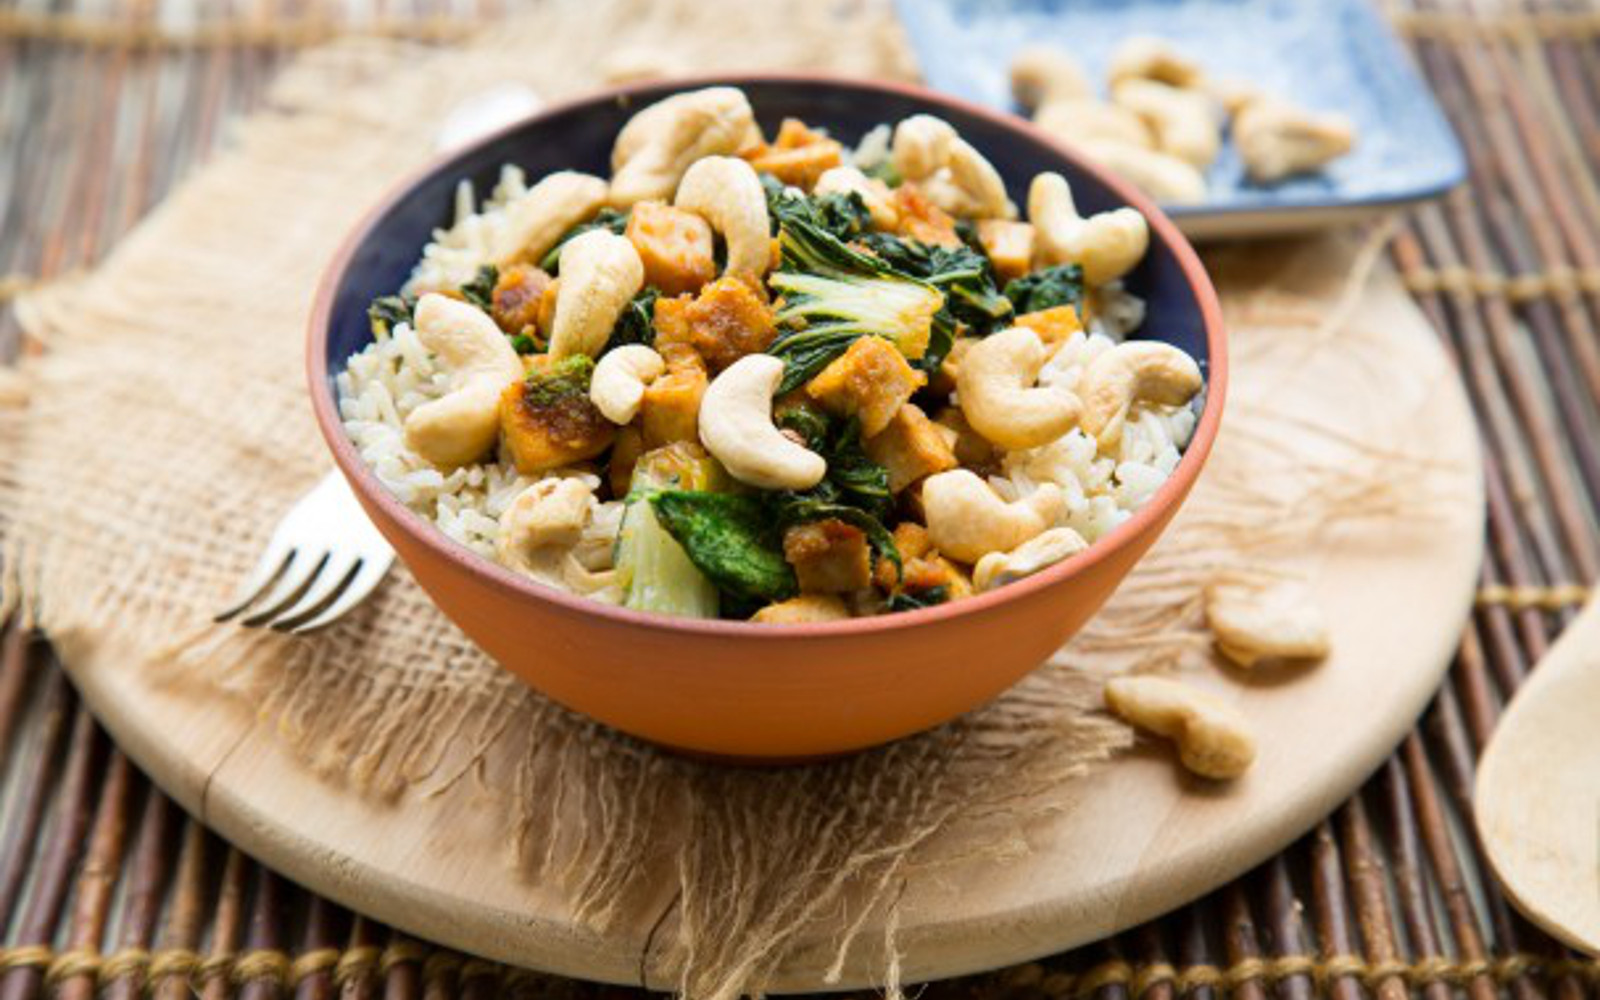 Ginger Citrus Tofu Power Bowl With Bok Choy and Cashews